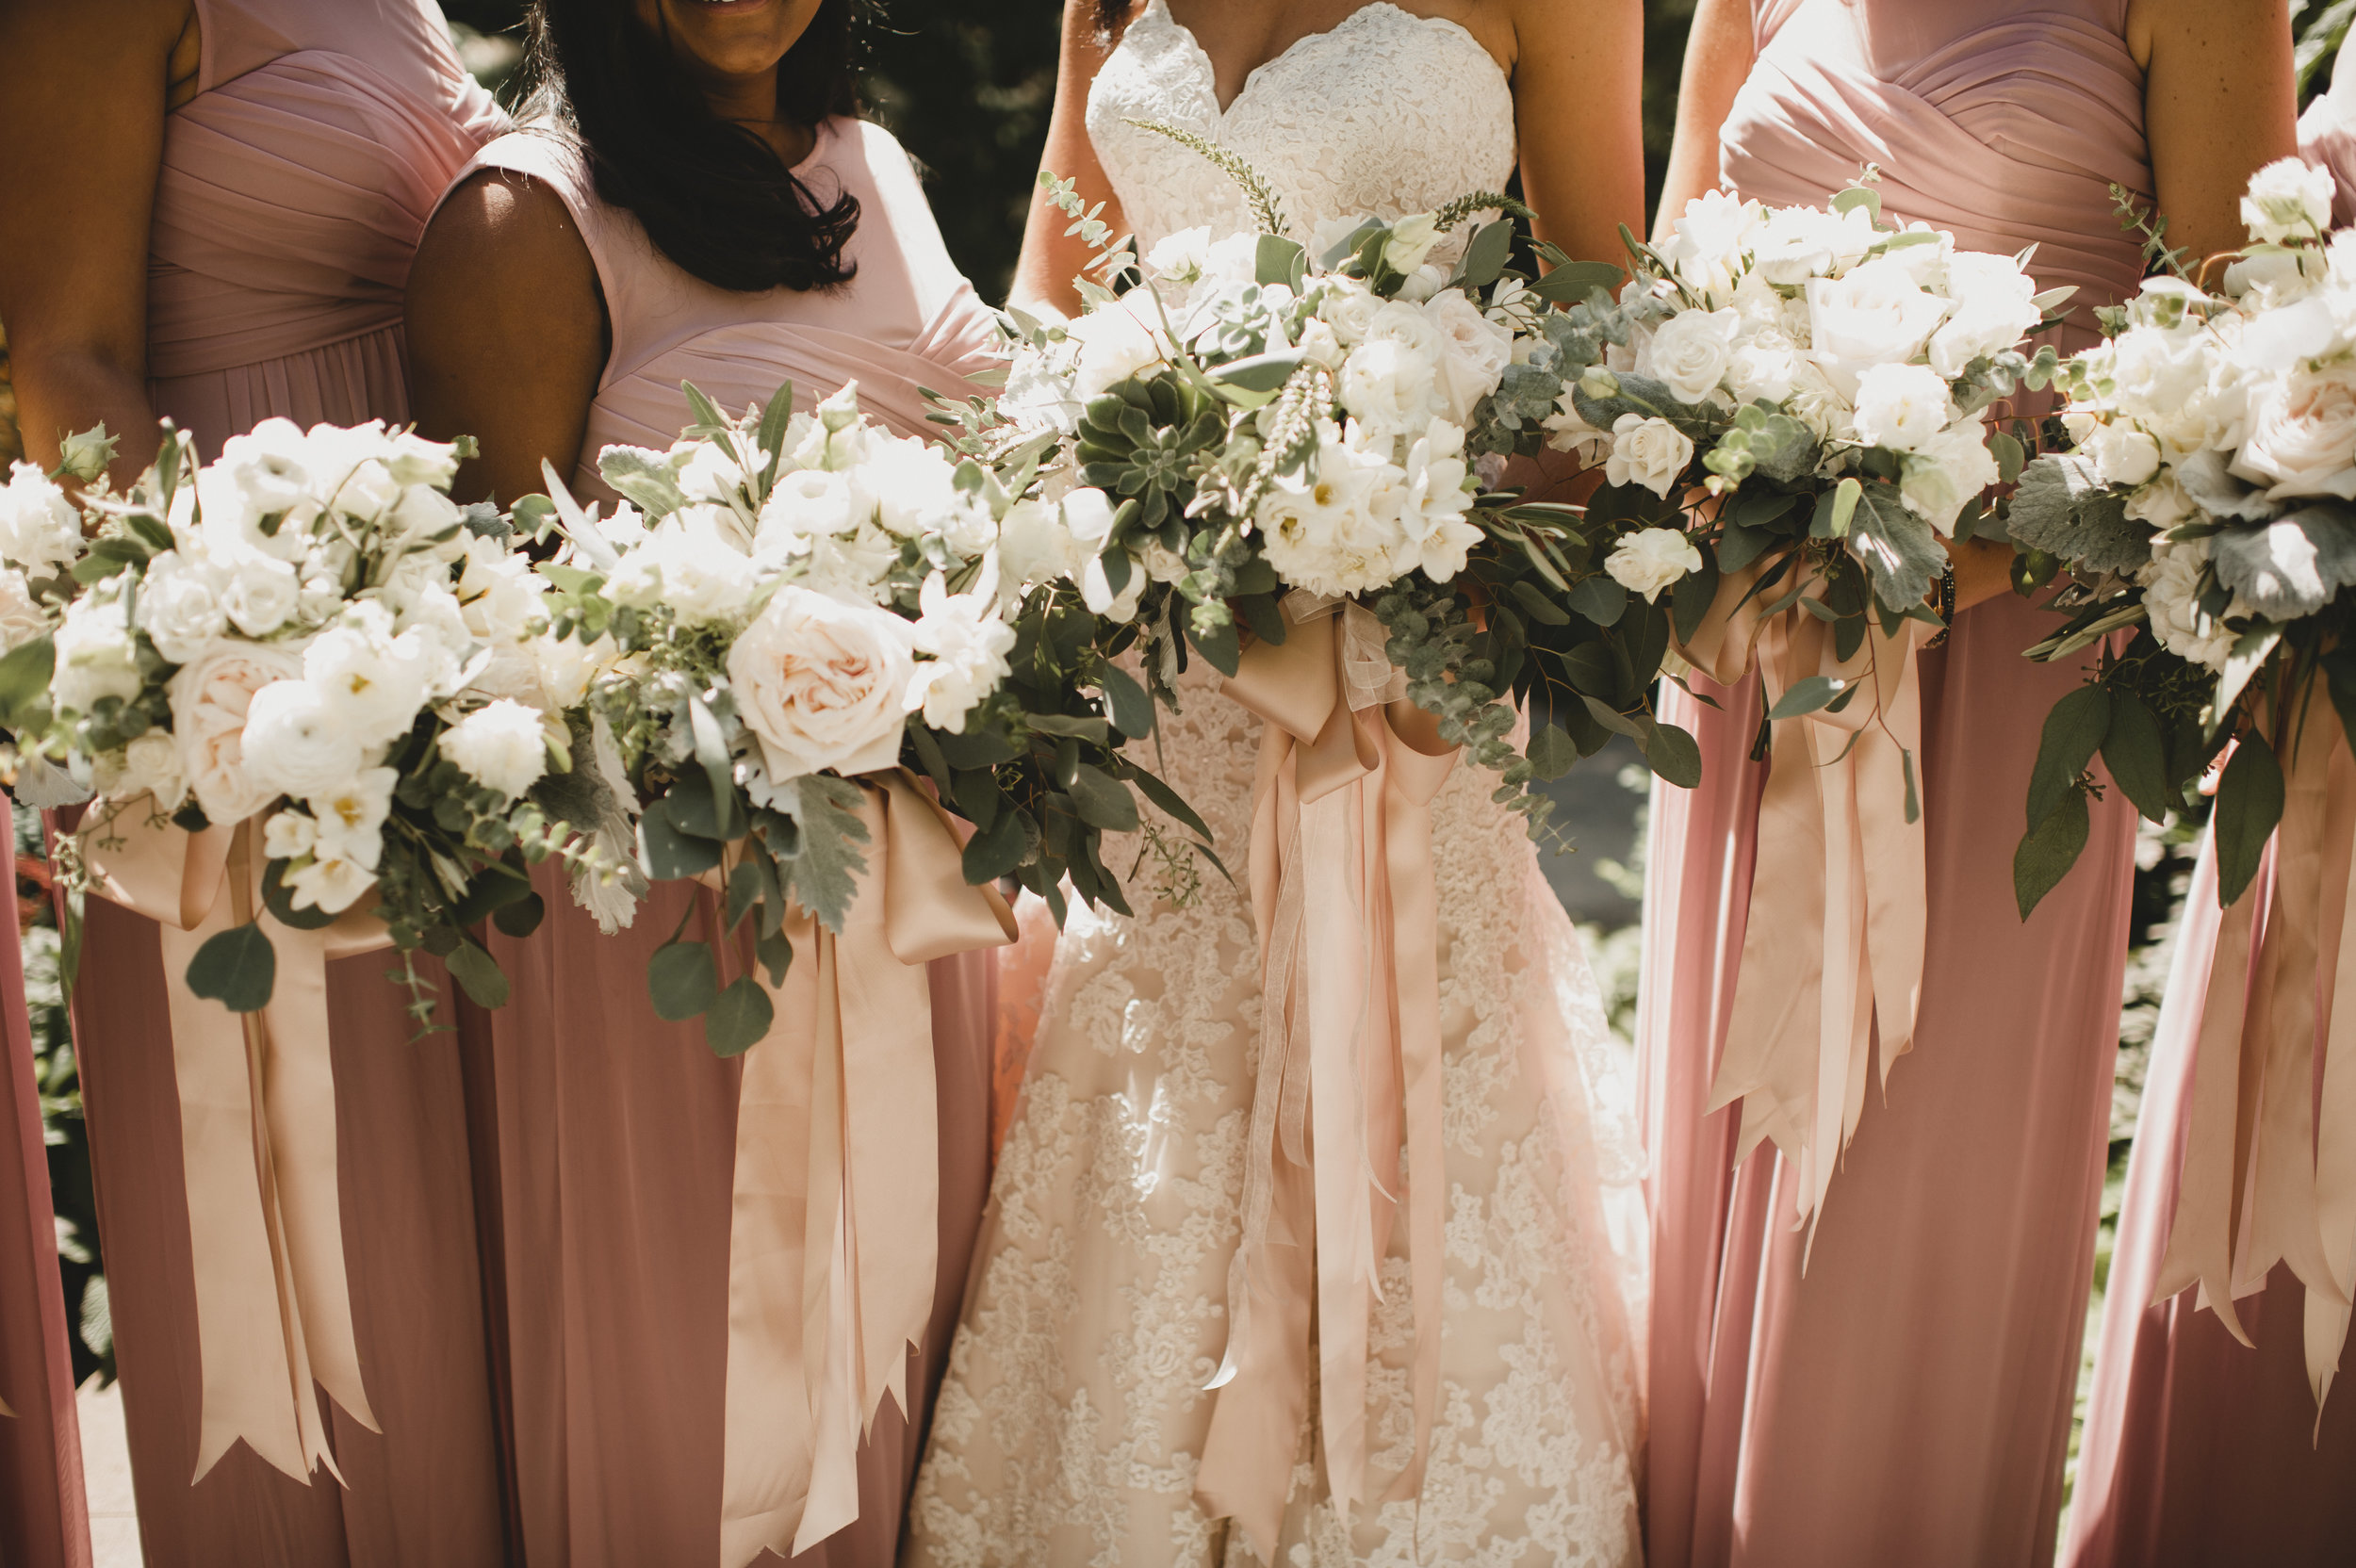 Collection of Bridesmaids Bouquets